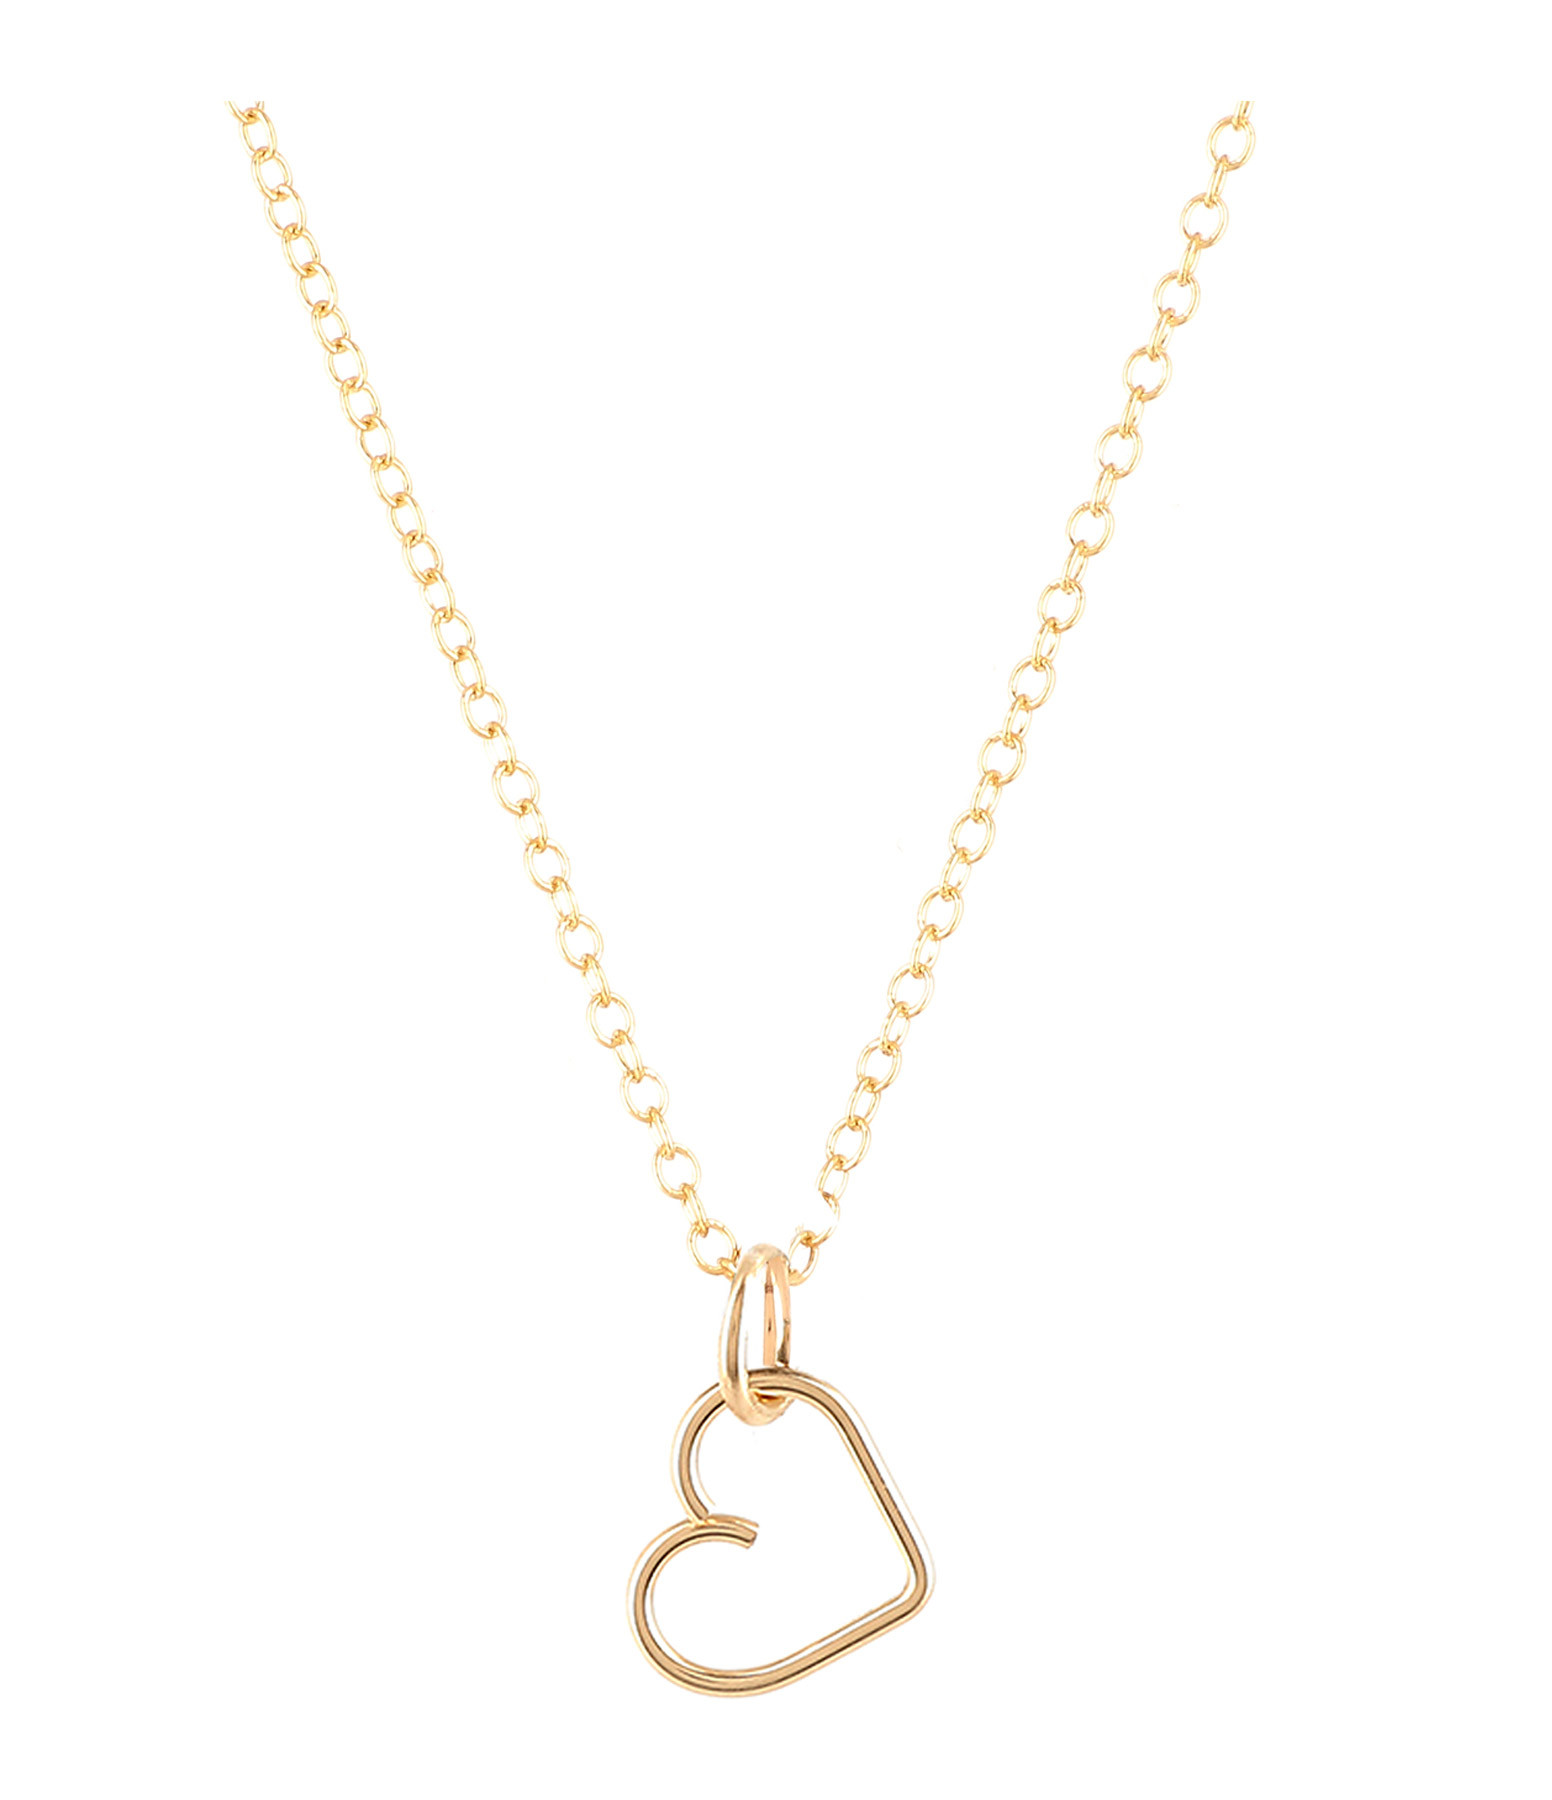 ATELIER PAULIN - Collier Lucky One Coeur Gold Filled 14K, Collection Charms